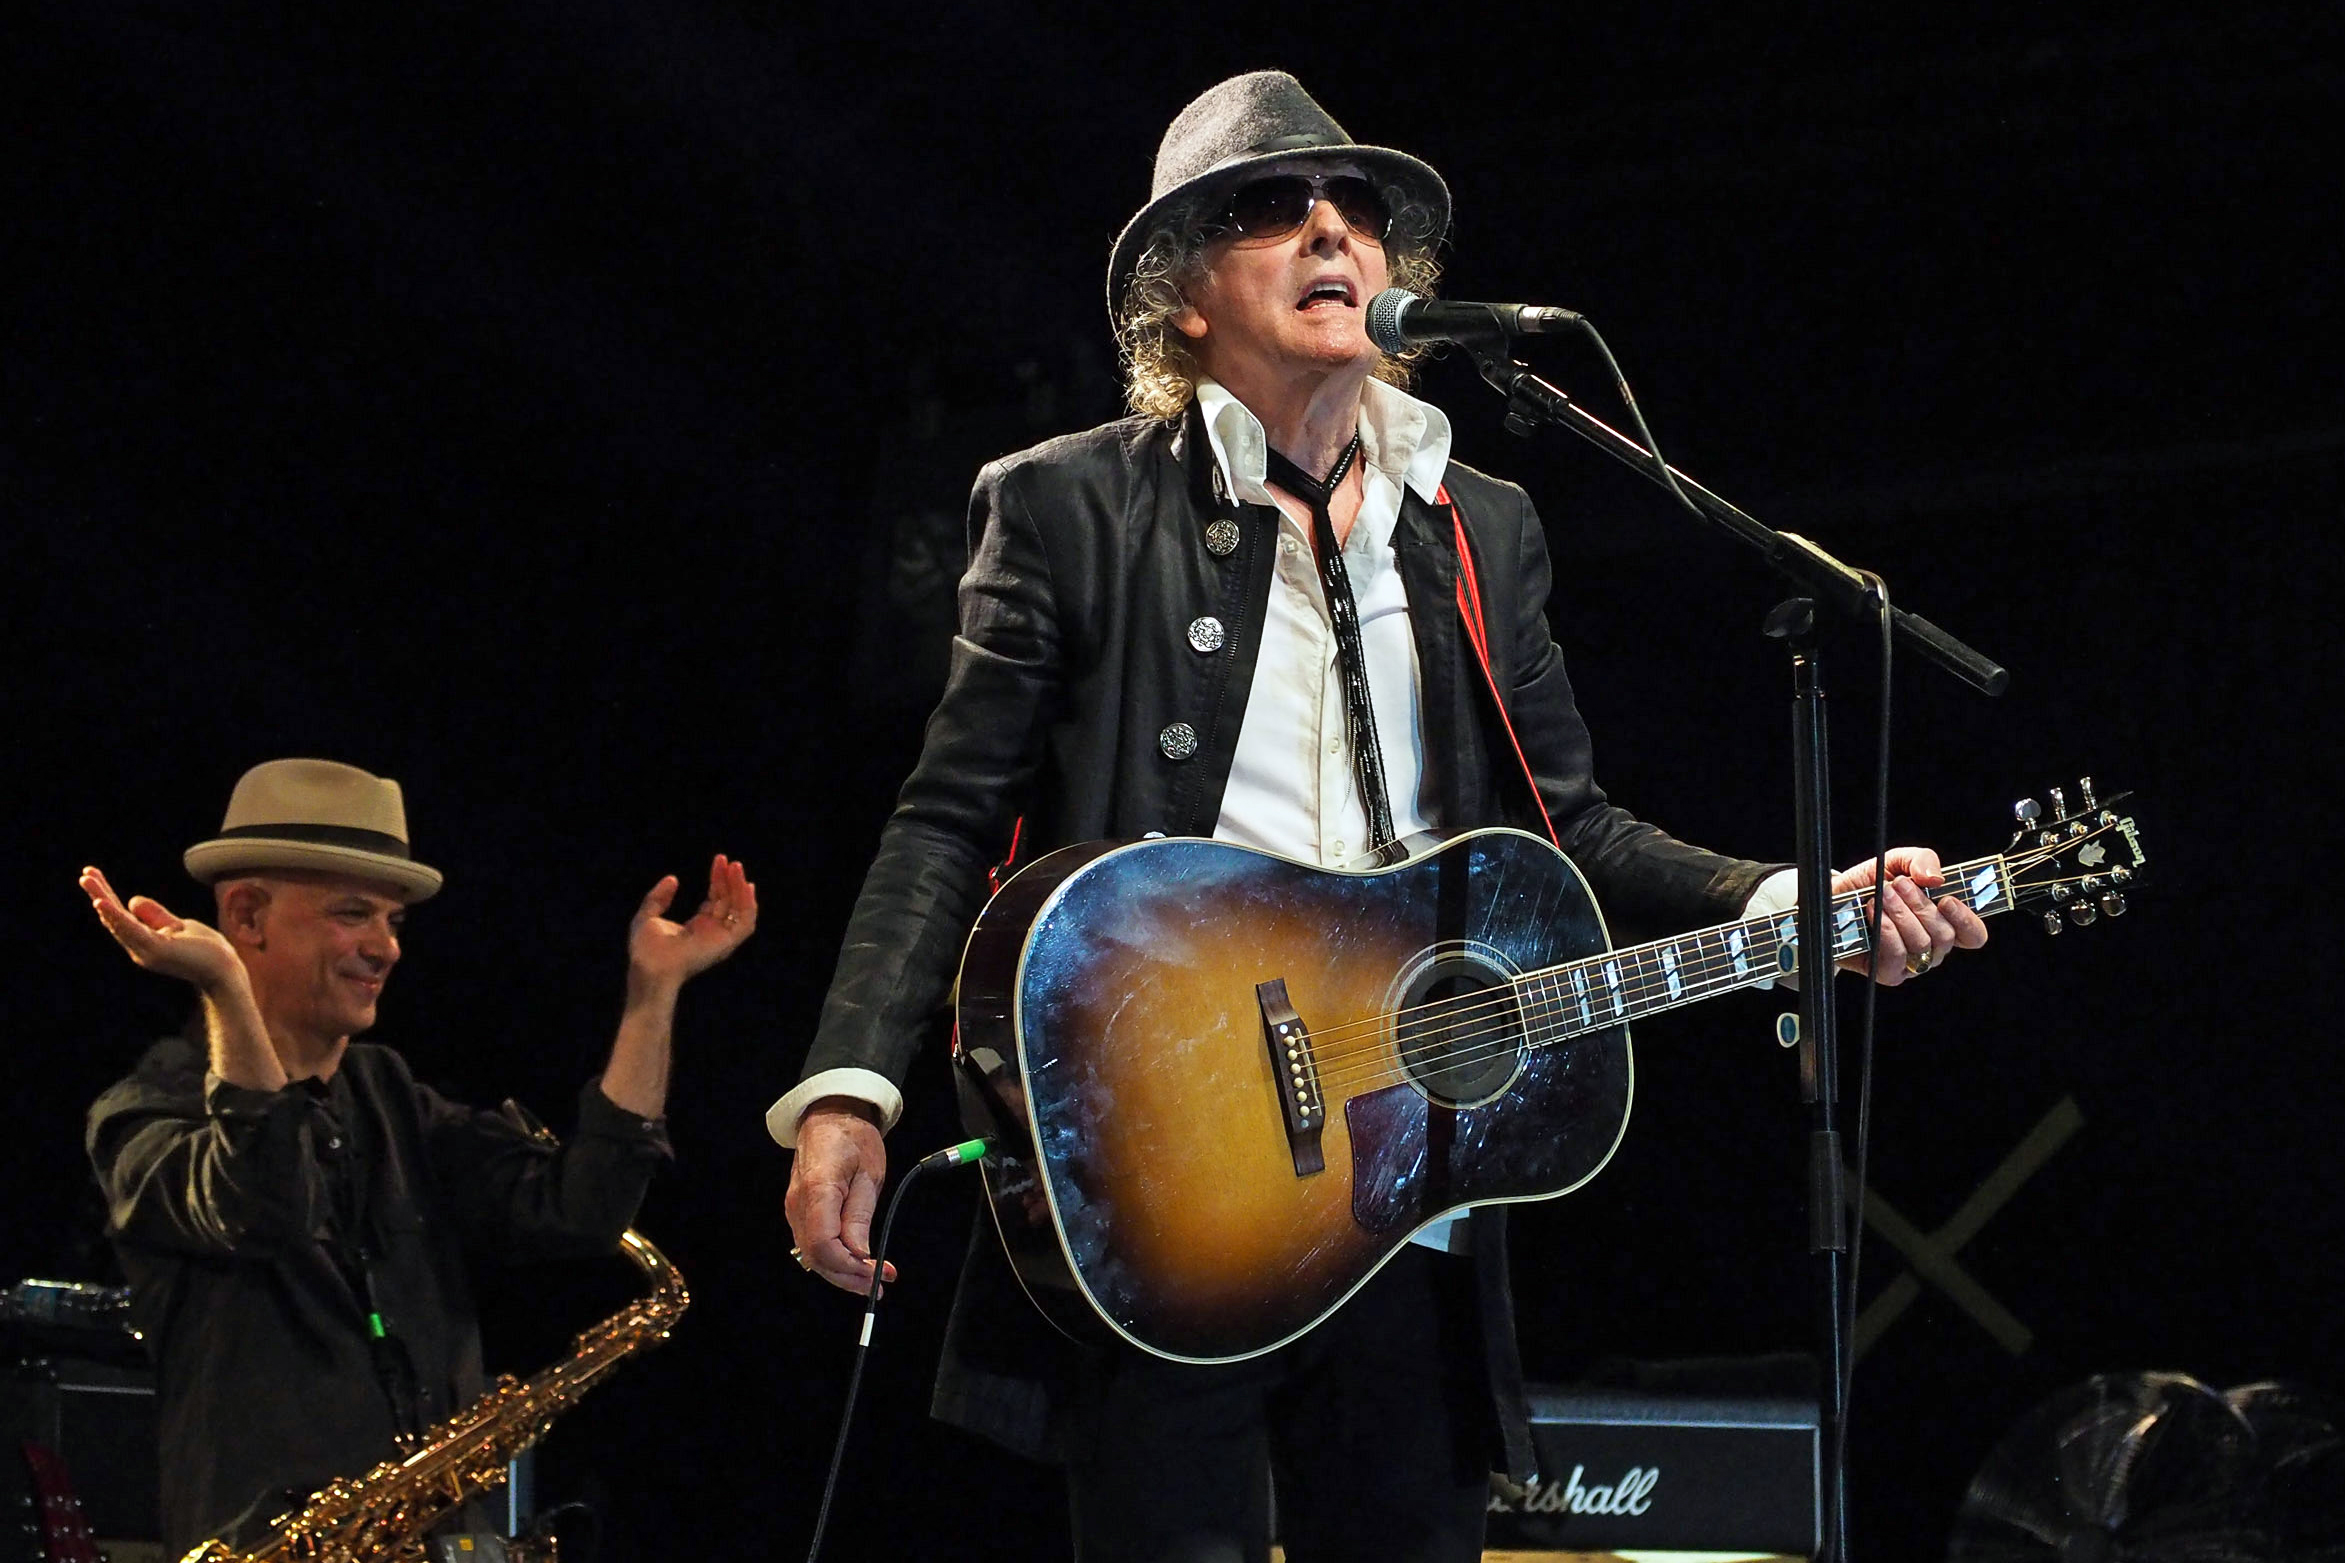 Mott The Hoople Touring America for First Time in 45 Years